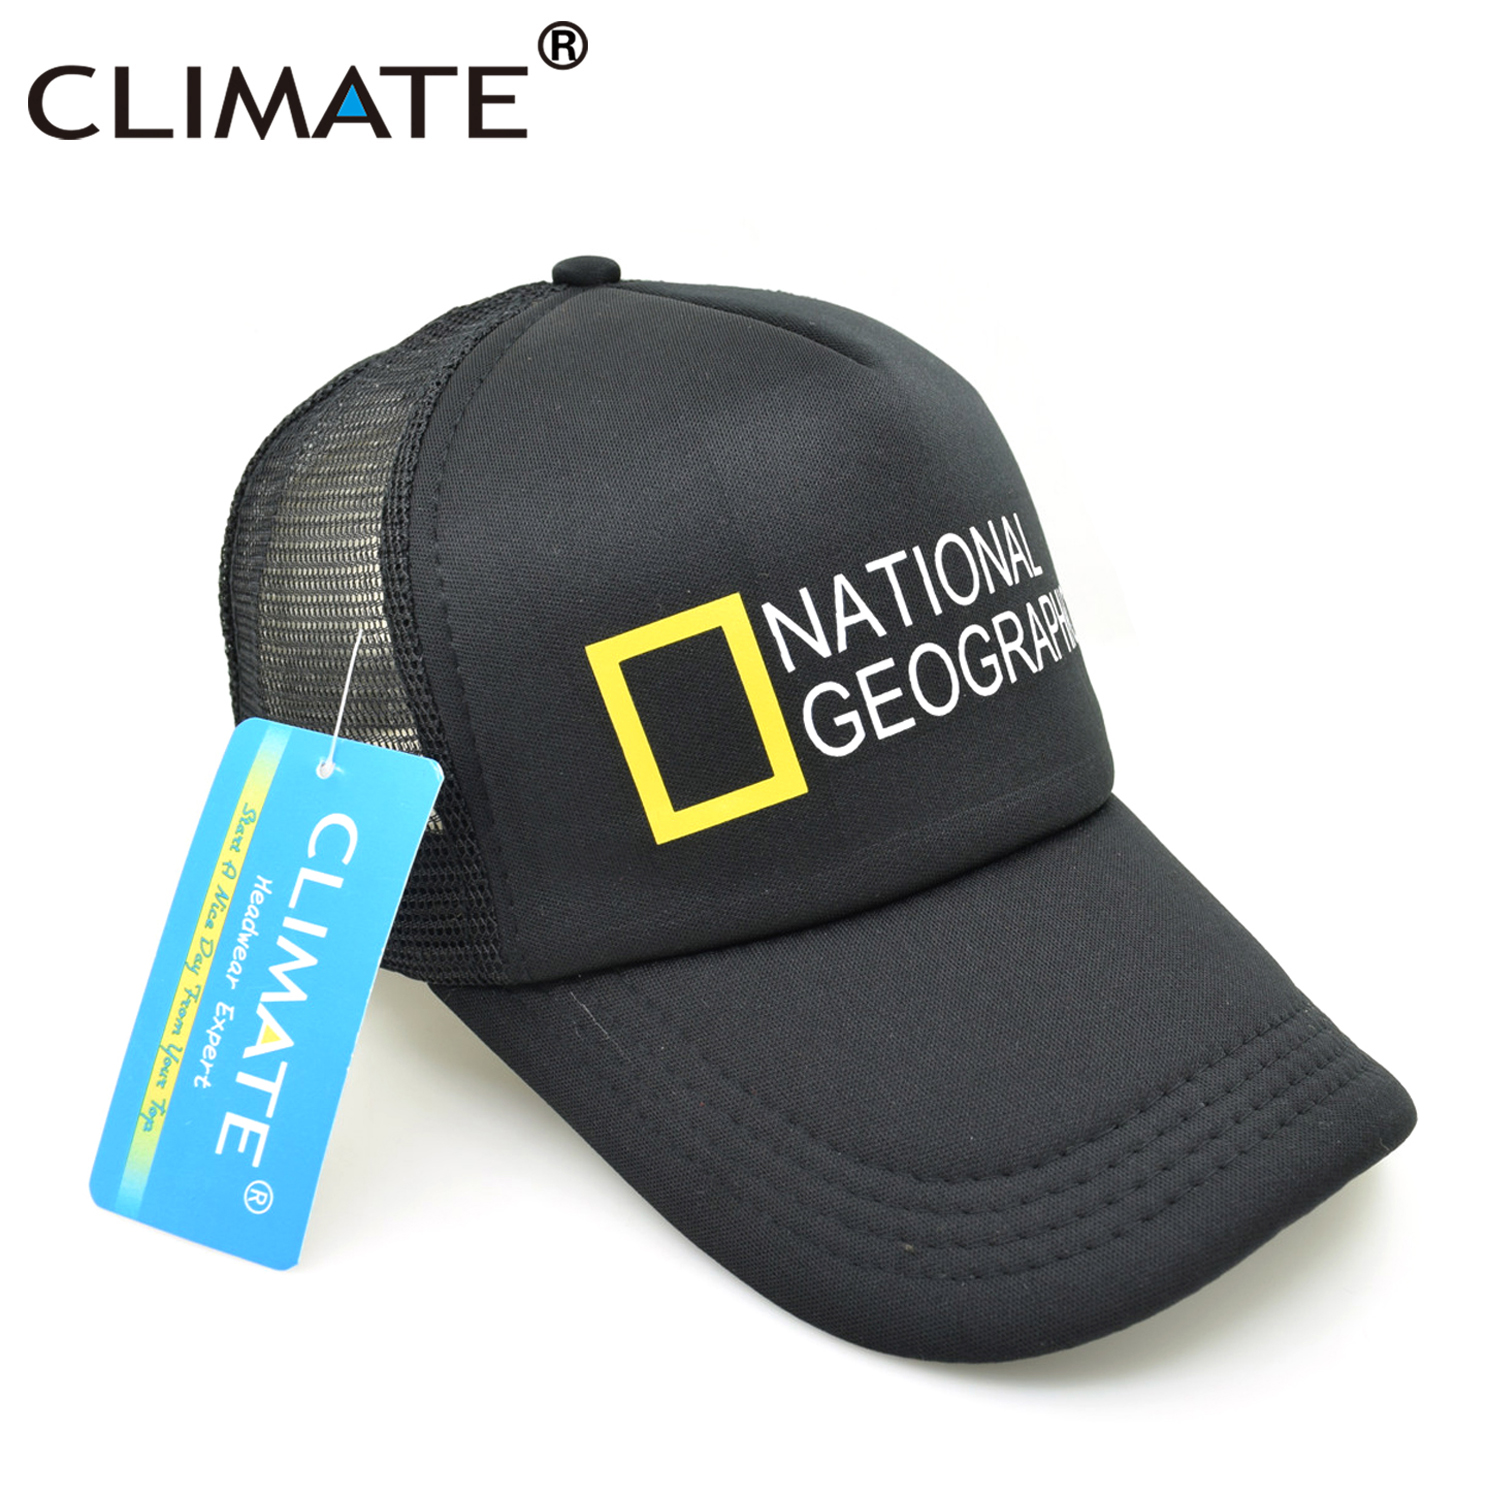 KLIMAAT Heren New Trucker Caps National Geographic Channel Hot Summer - Kledingaccessoires - Foto 3